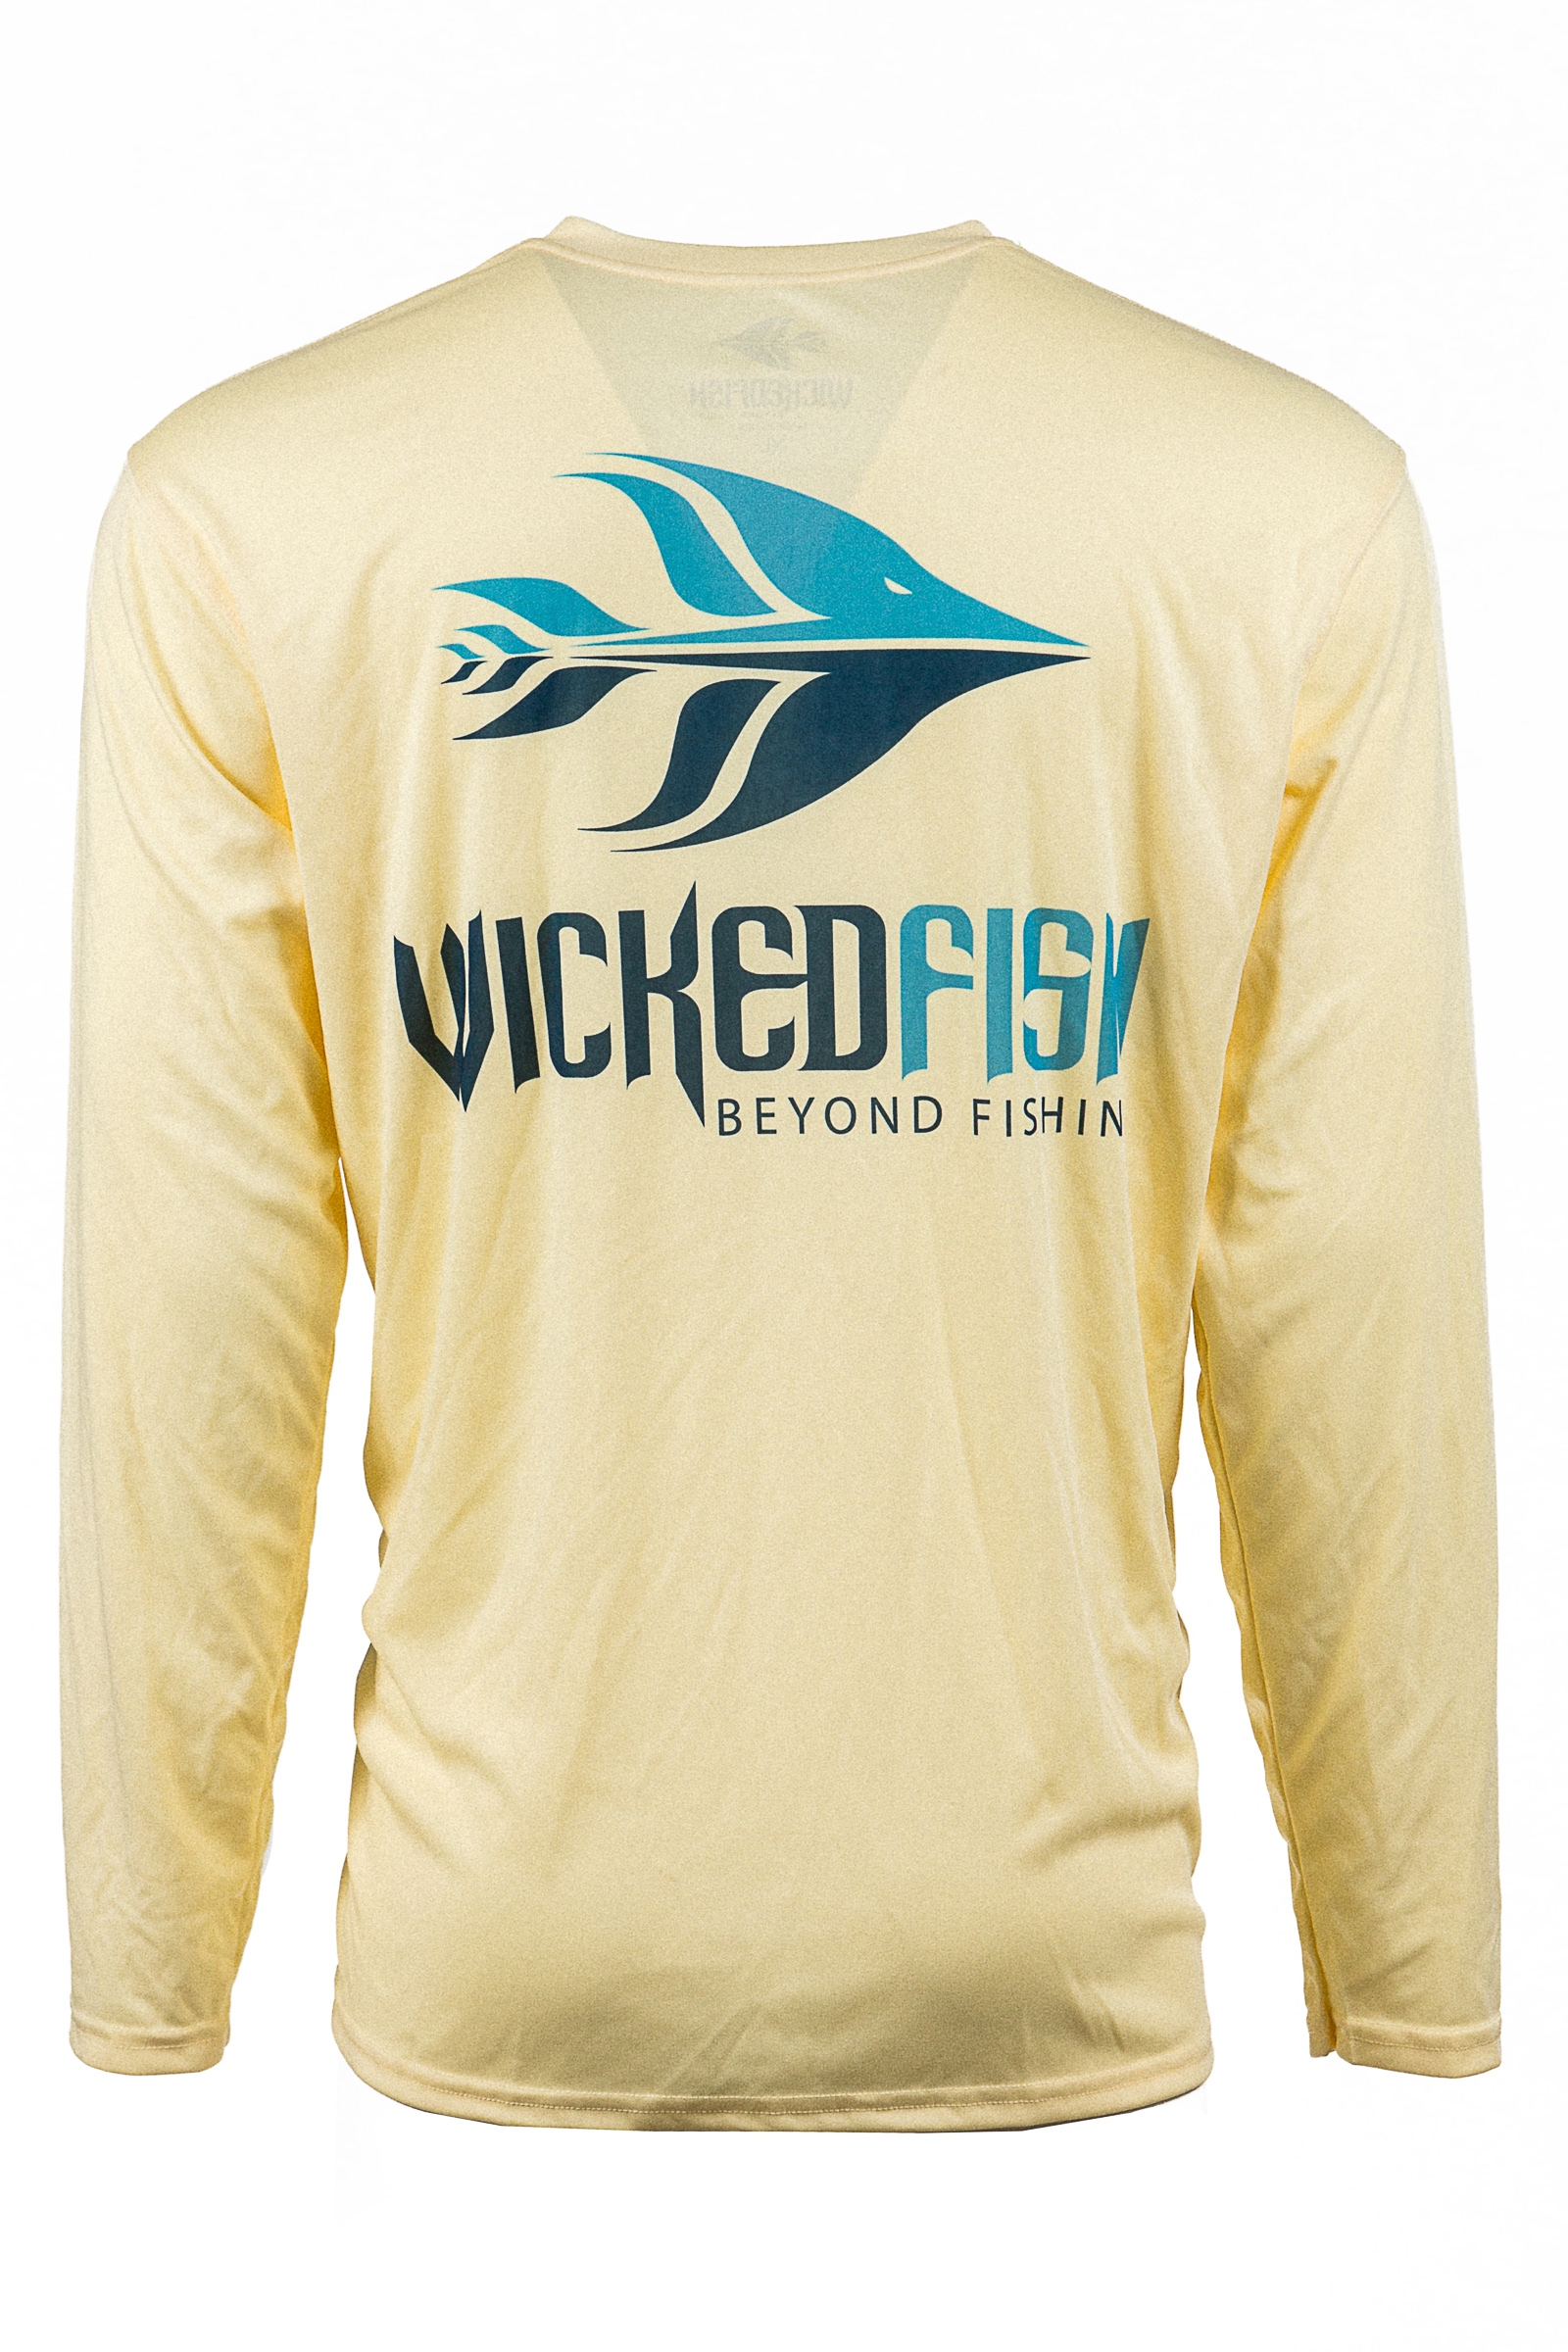 Wicked Fish Apparel